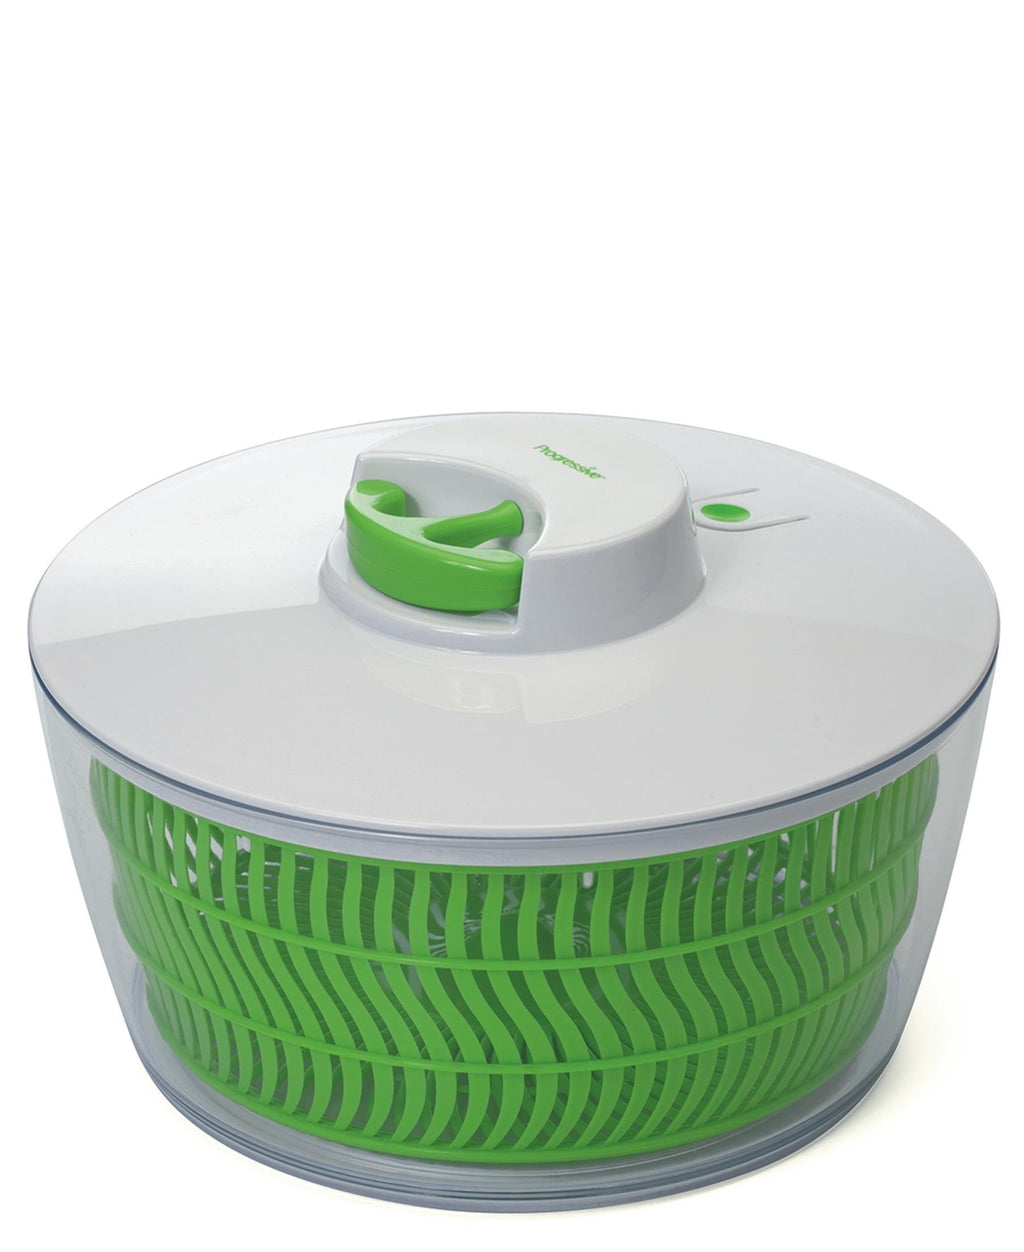 Progressive Salad Spinner - Green